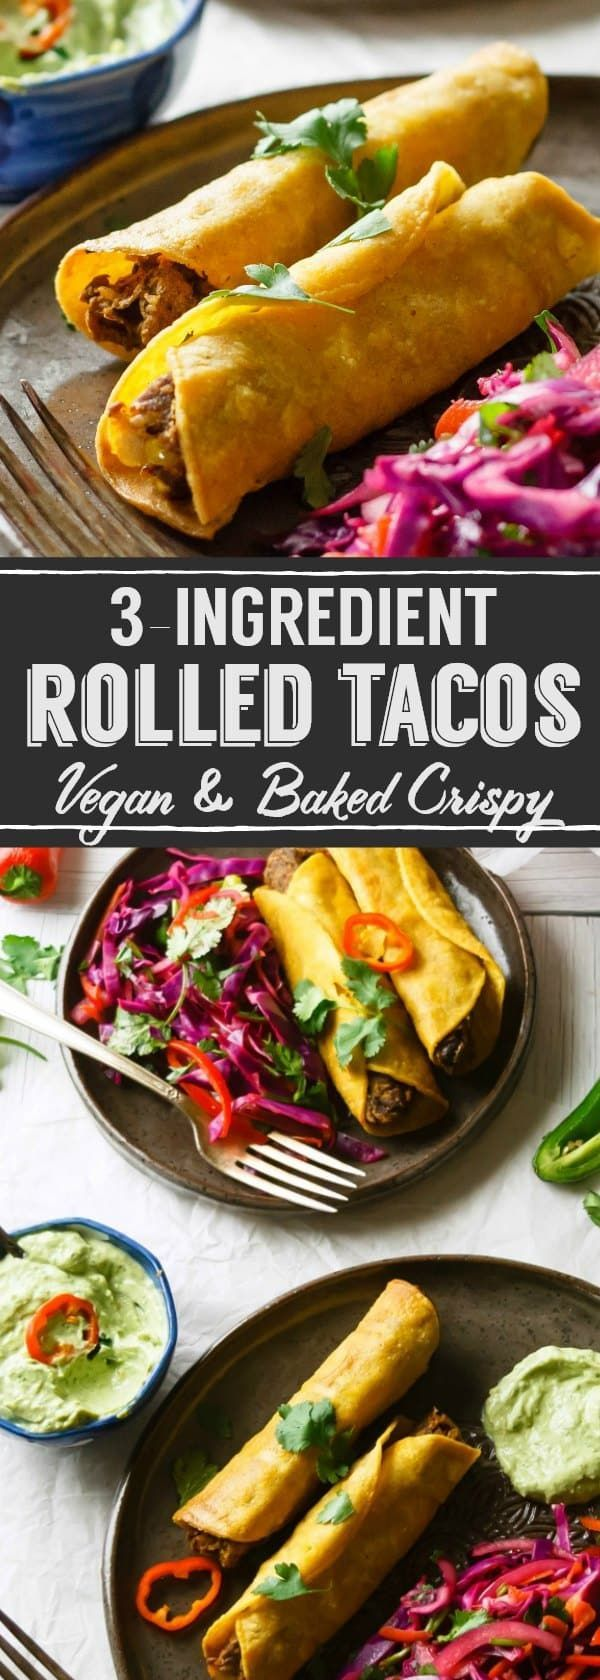 Three ingredients and basic kitchen skills are all you need to bake Easy Vegan Rolled Tacos to golden, crisp perfection. I add a simple salad for an easy, healthy dinner!